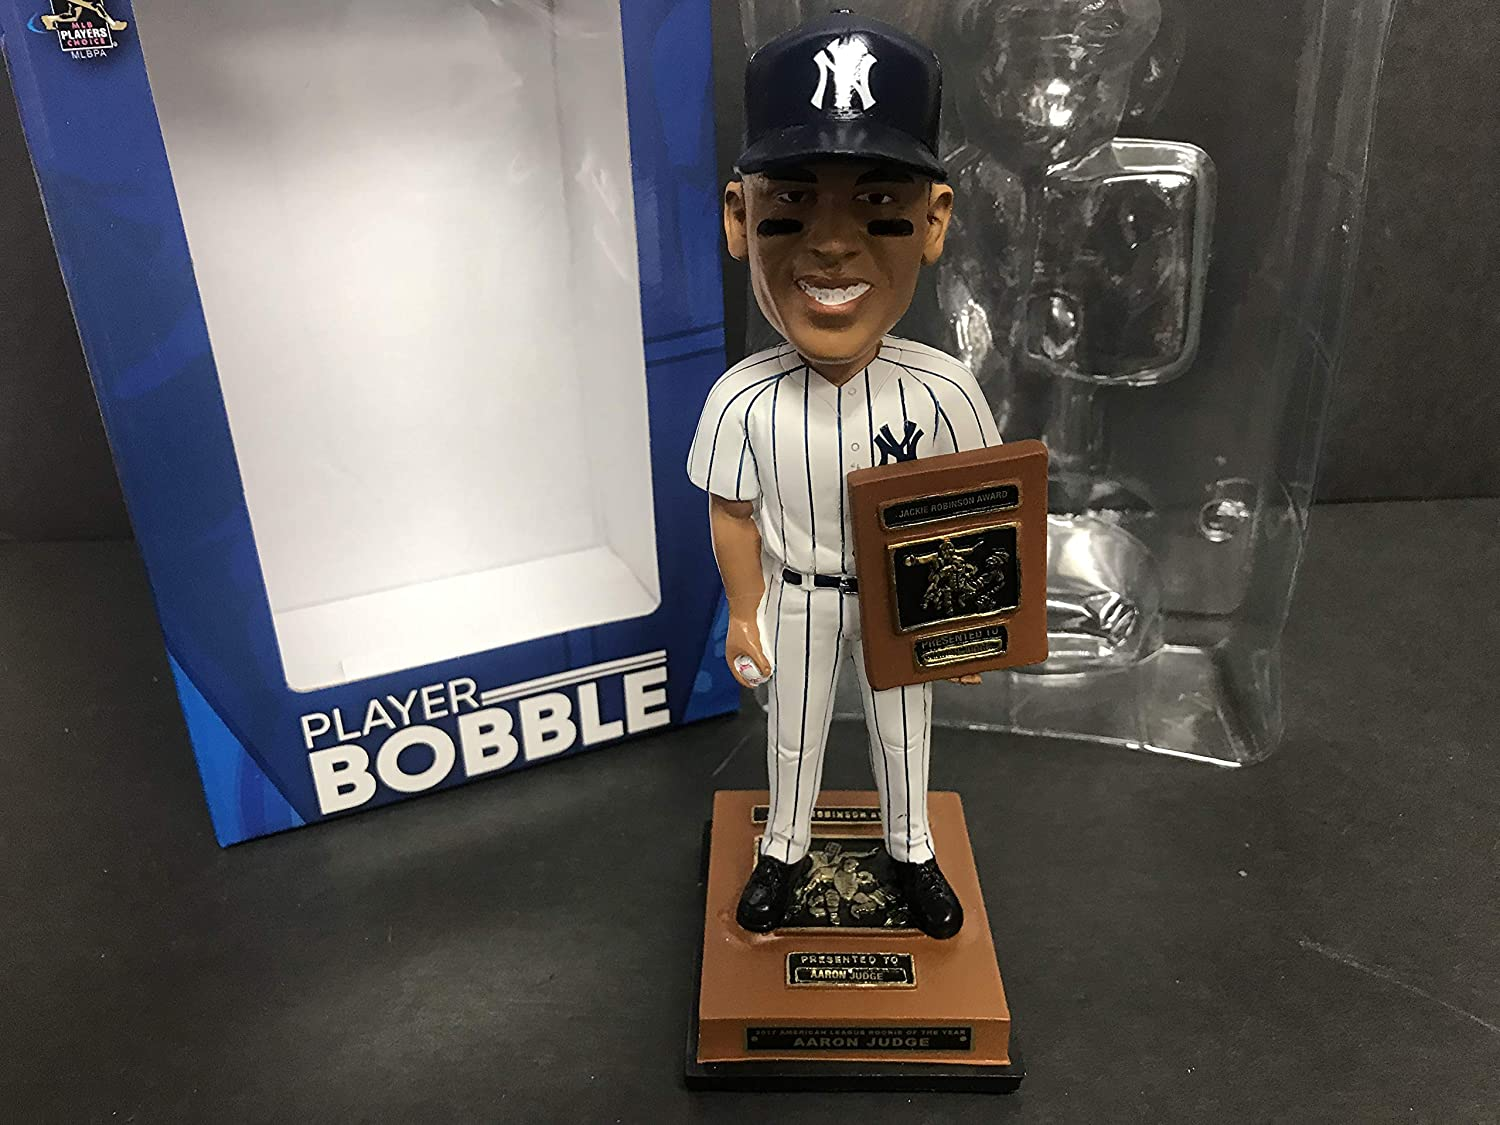 Aaron Judge 2017 New York Yankees ROOKIE of the YEAR (Jackie Robinson Award Winner) Limited Edition Bobblehead